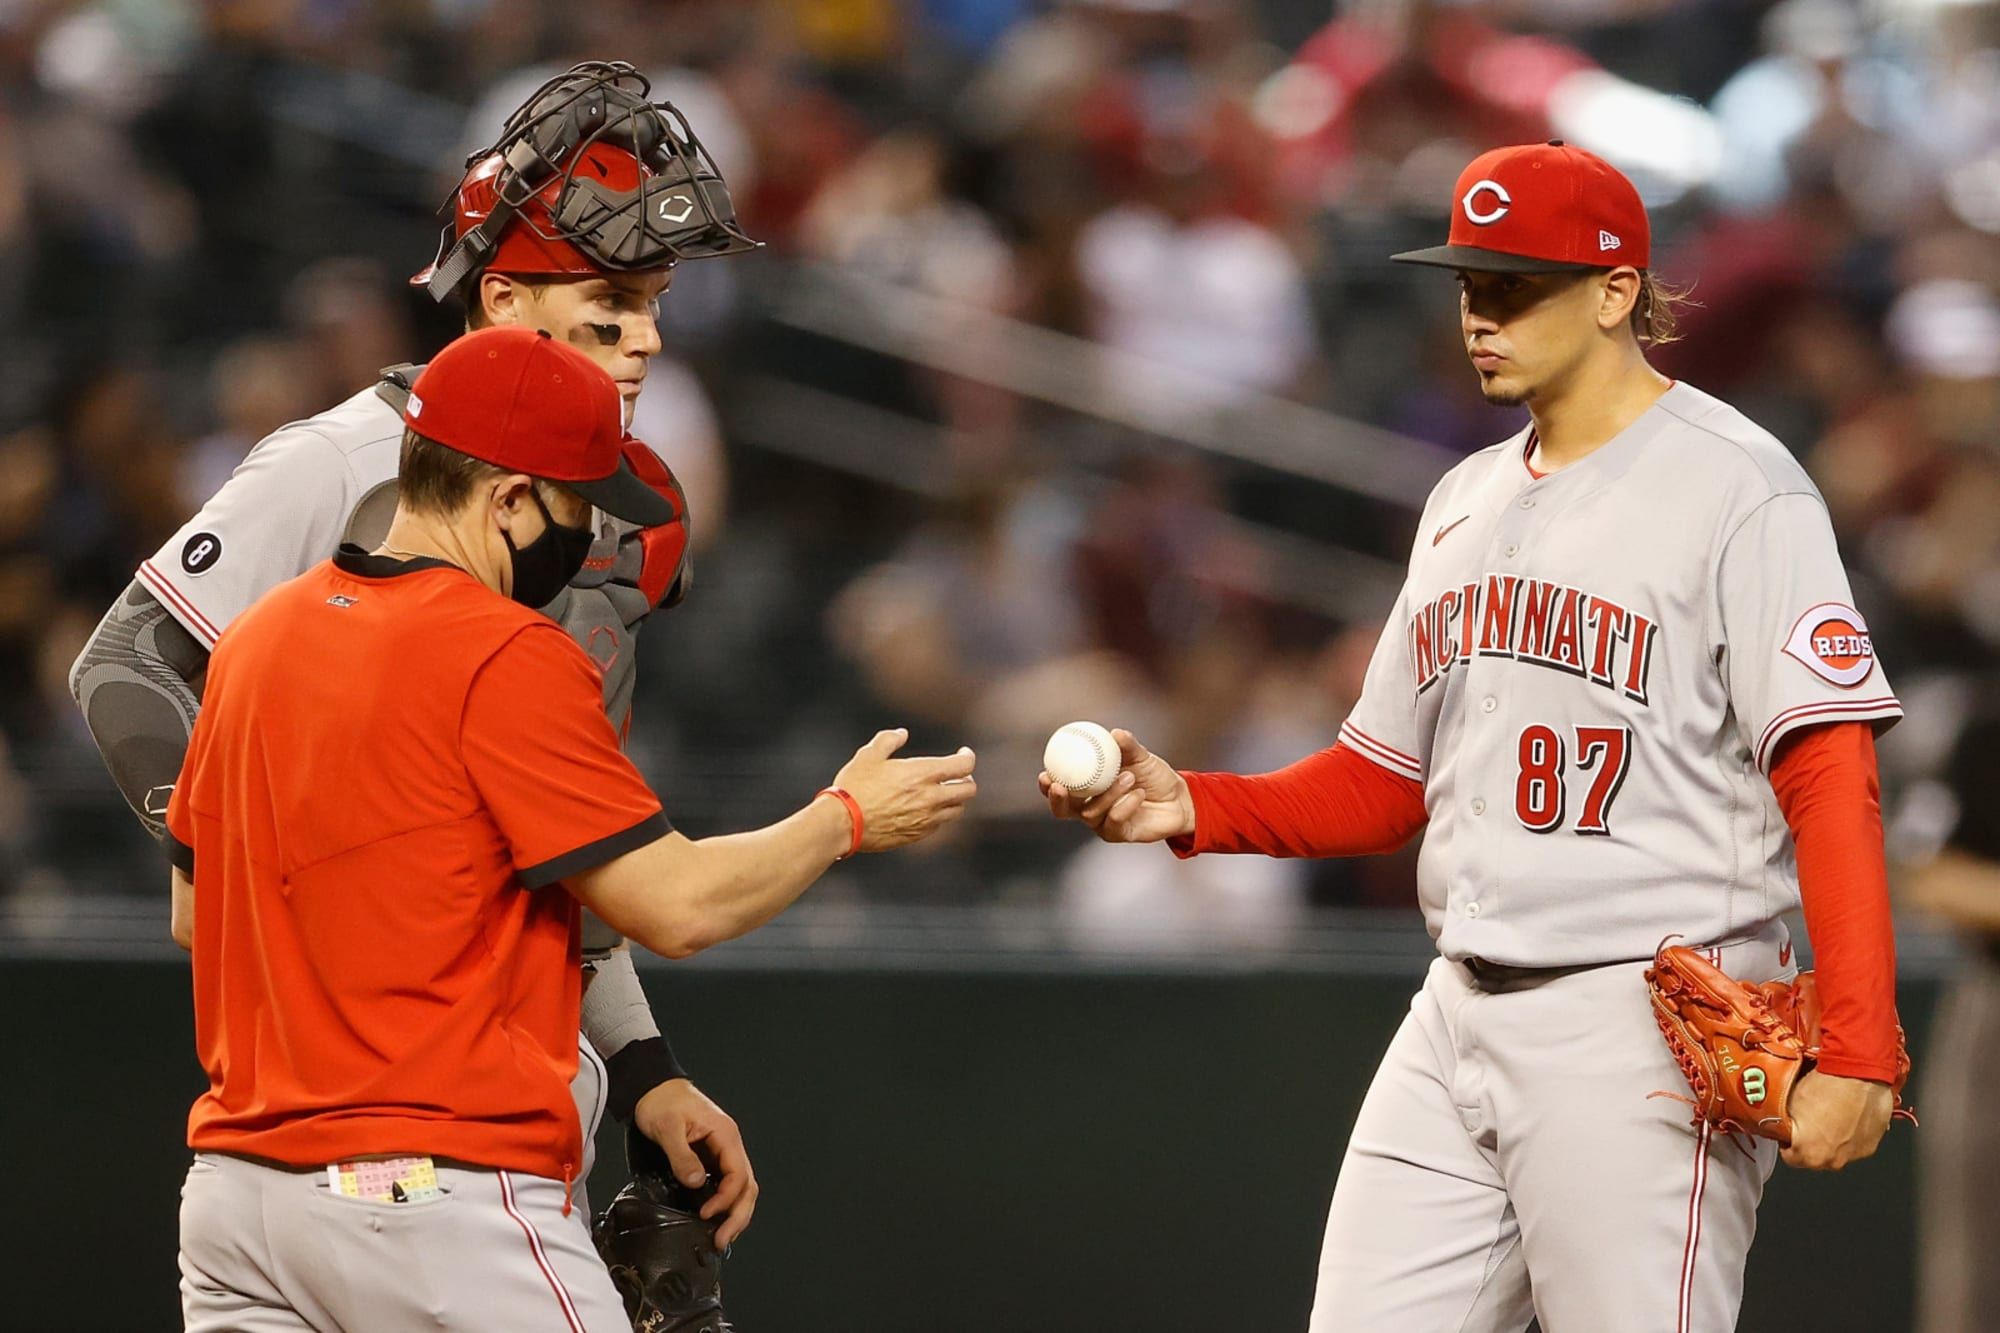 Reds: Sonny Gray's return will be the death knell for Jose De Leon